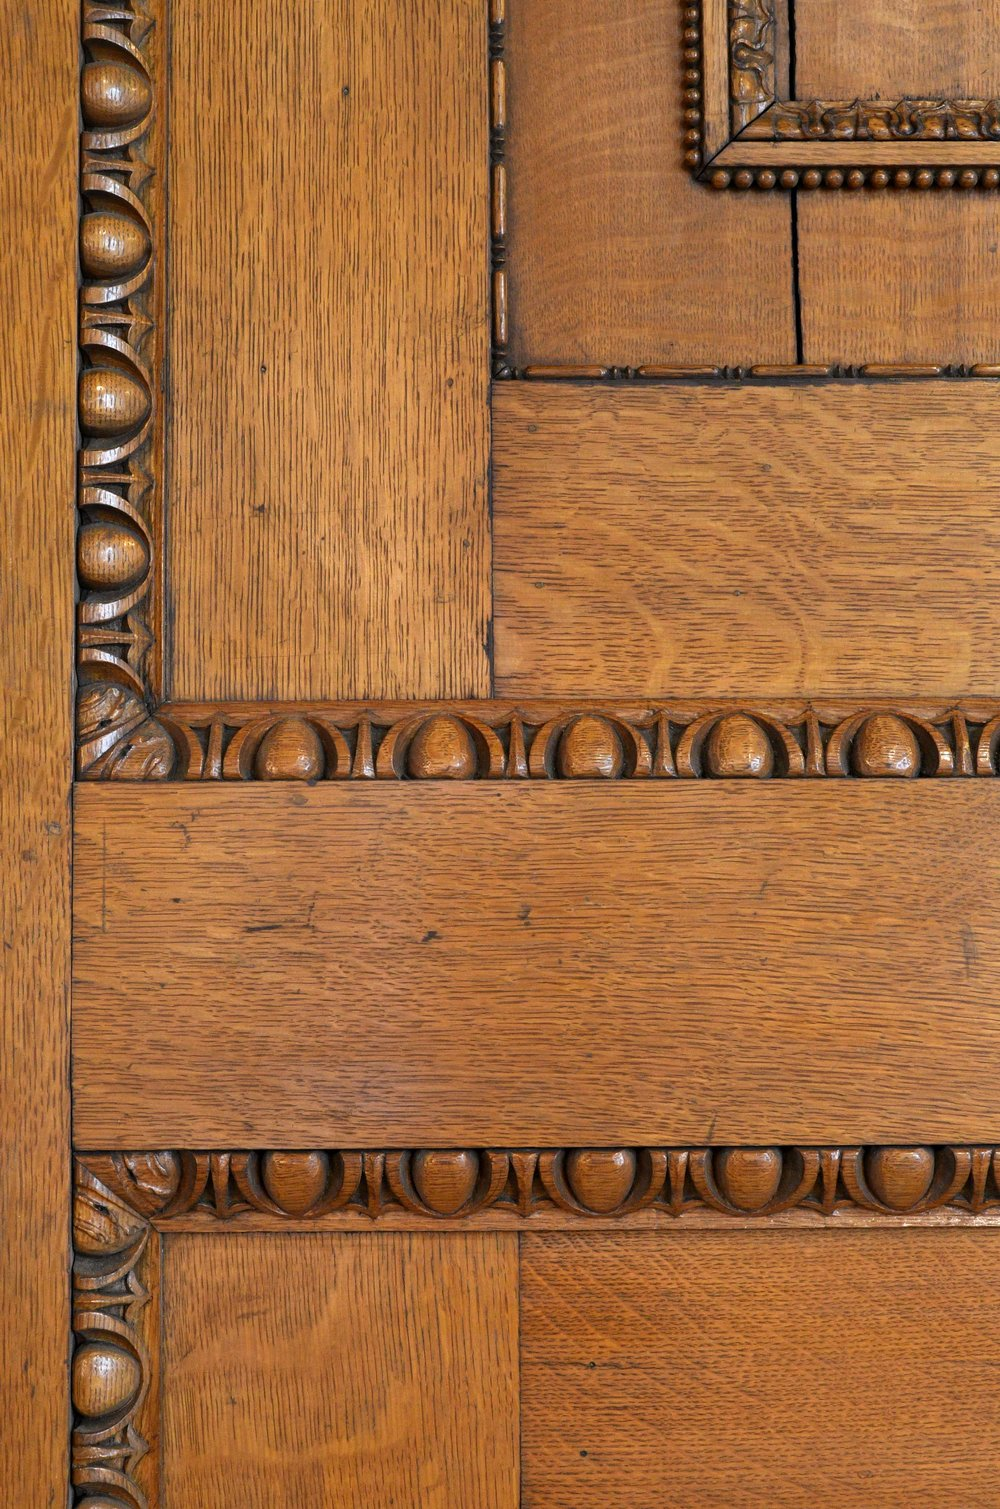 47925-massive-carved-oak-pocket-door-details.jpg